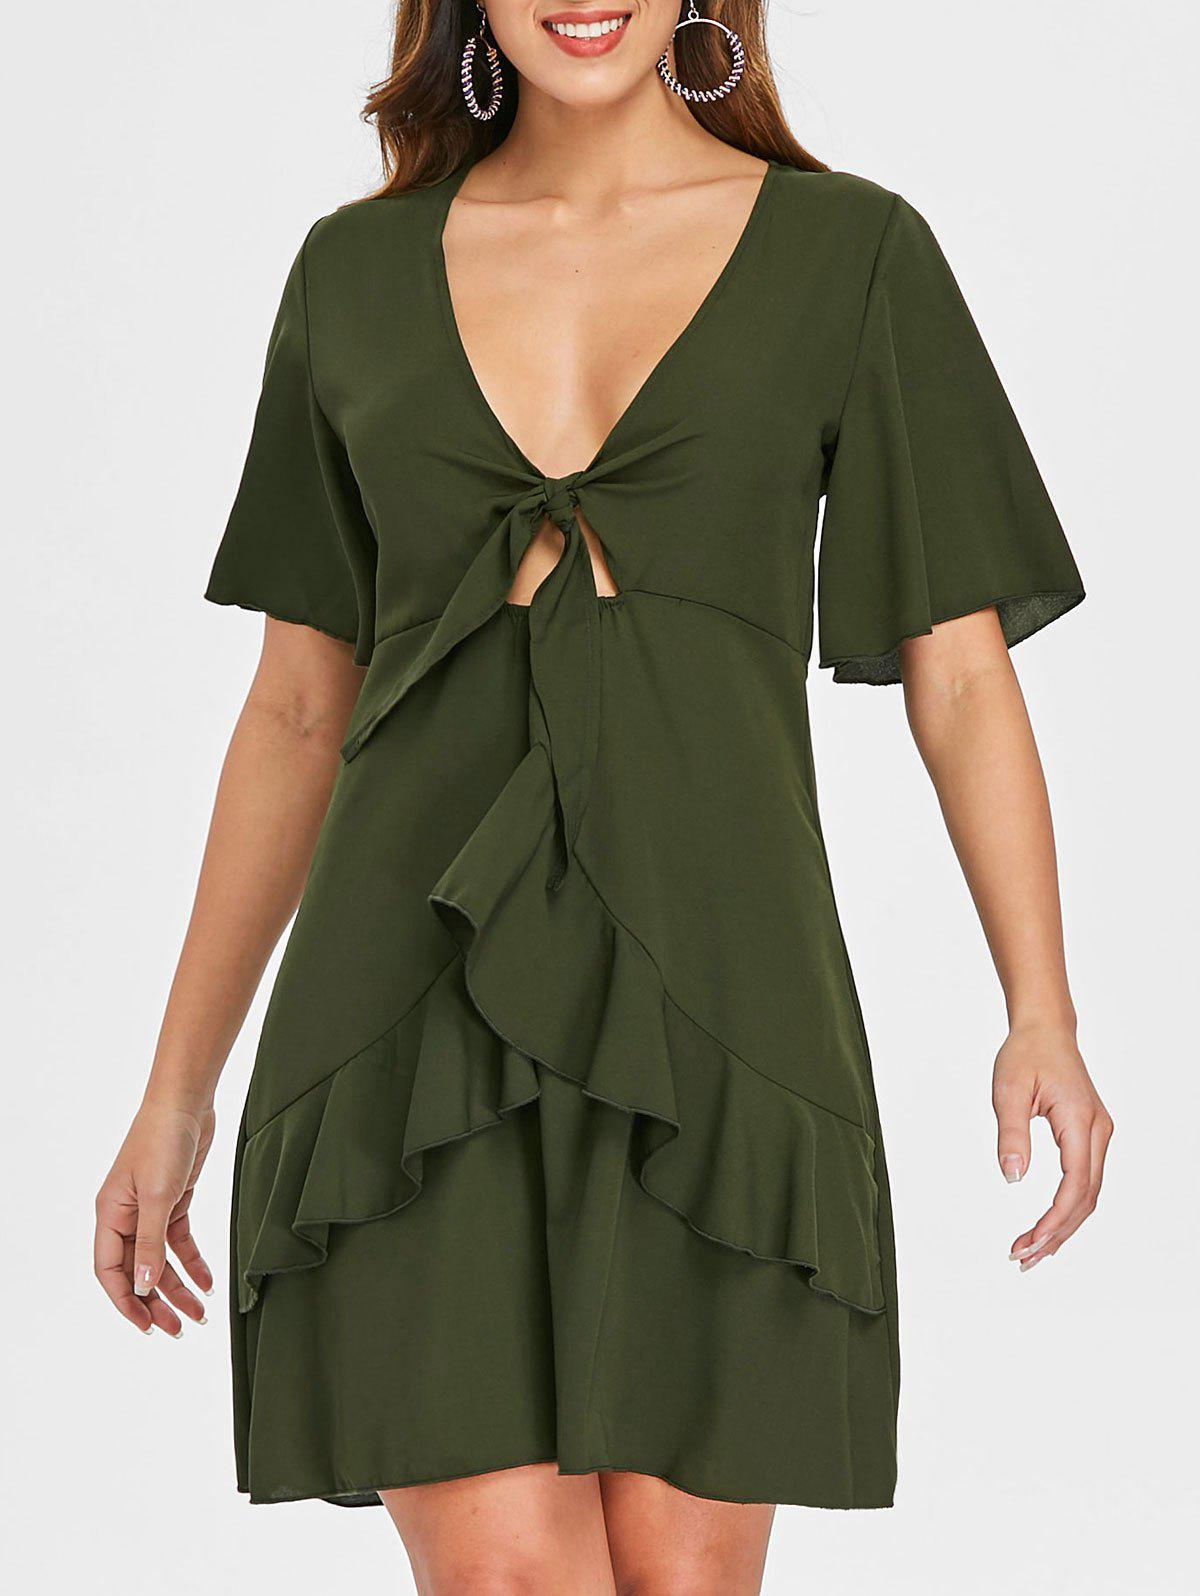 Store Knot Tie Layered Flounce Dress